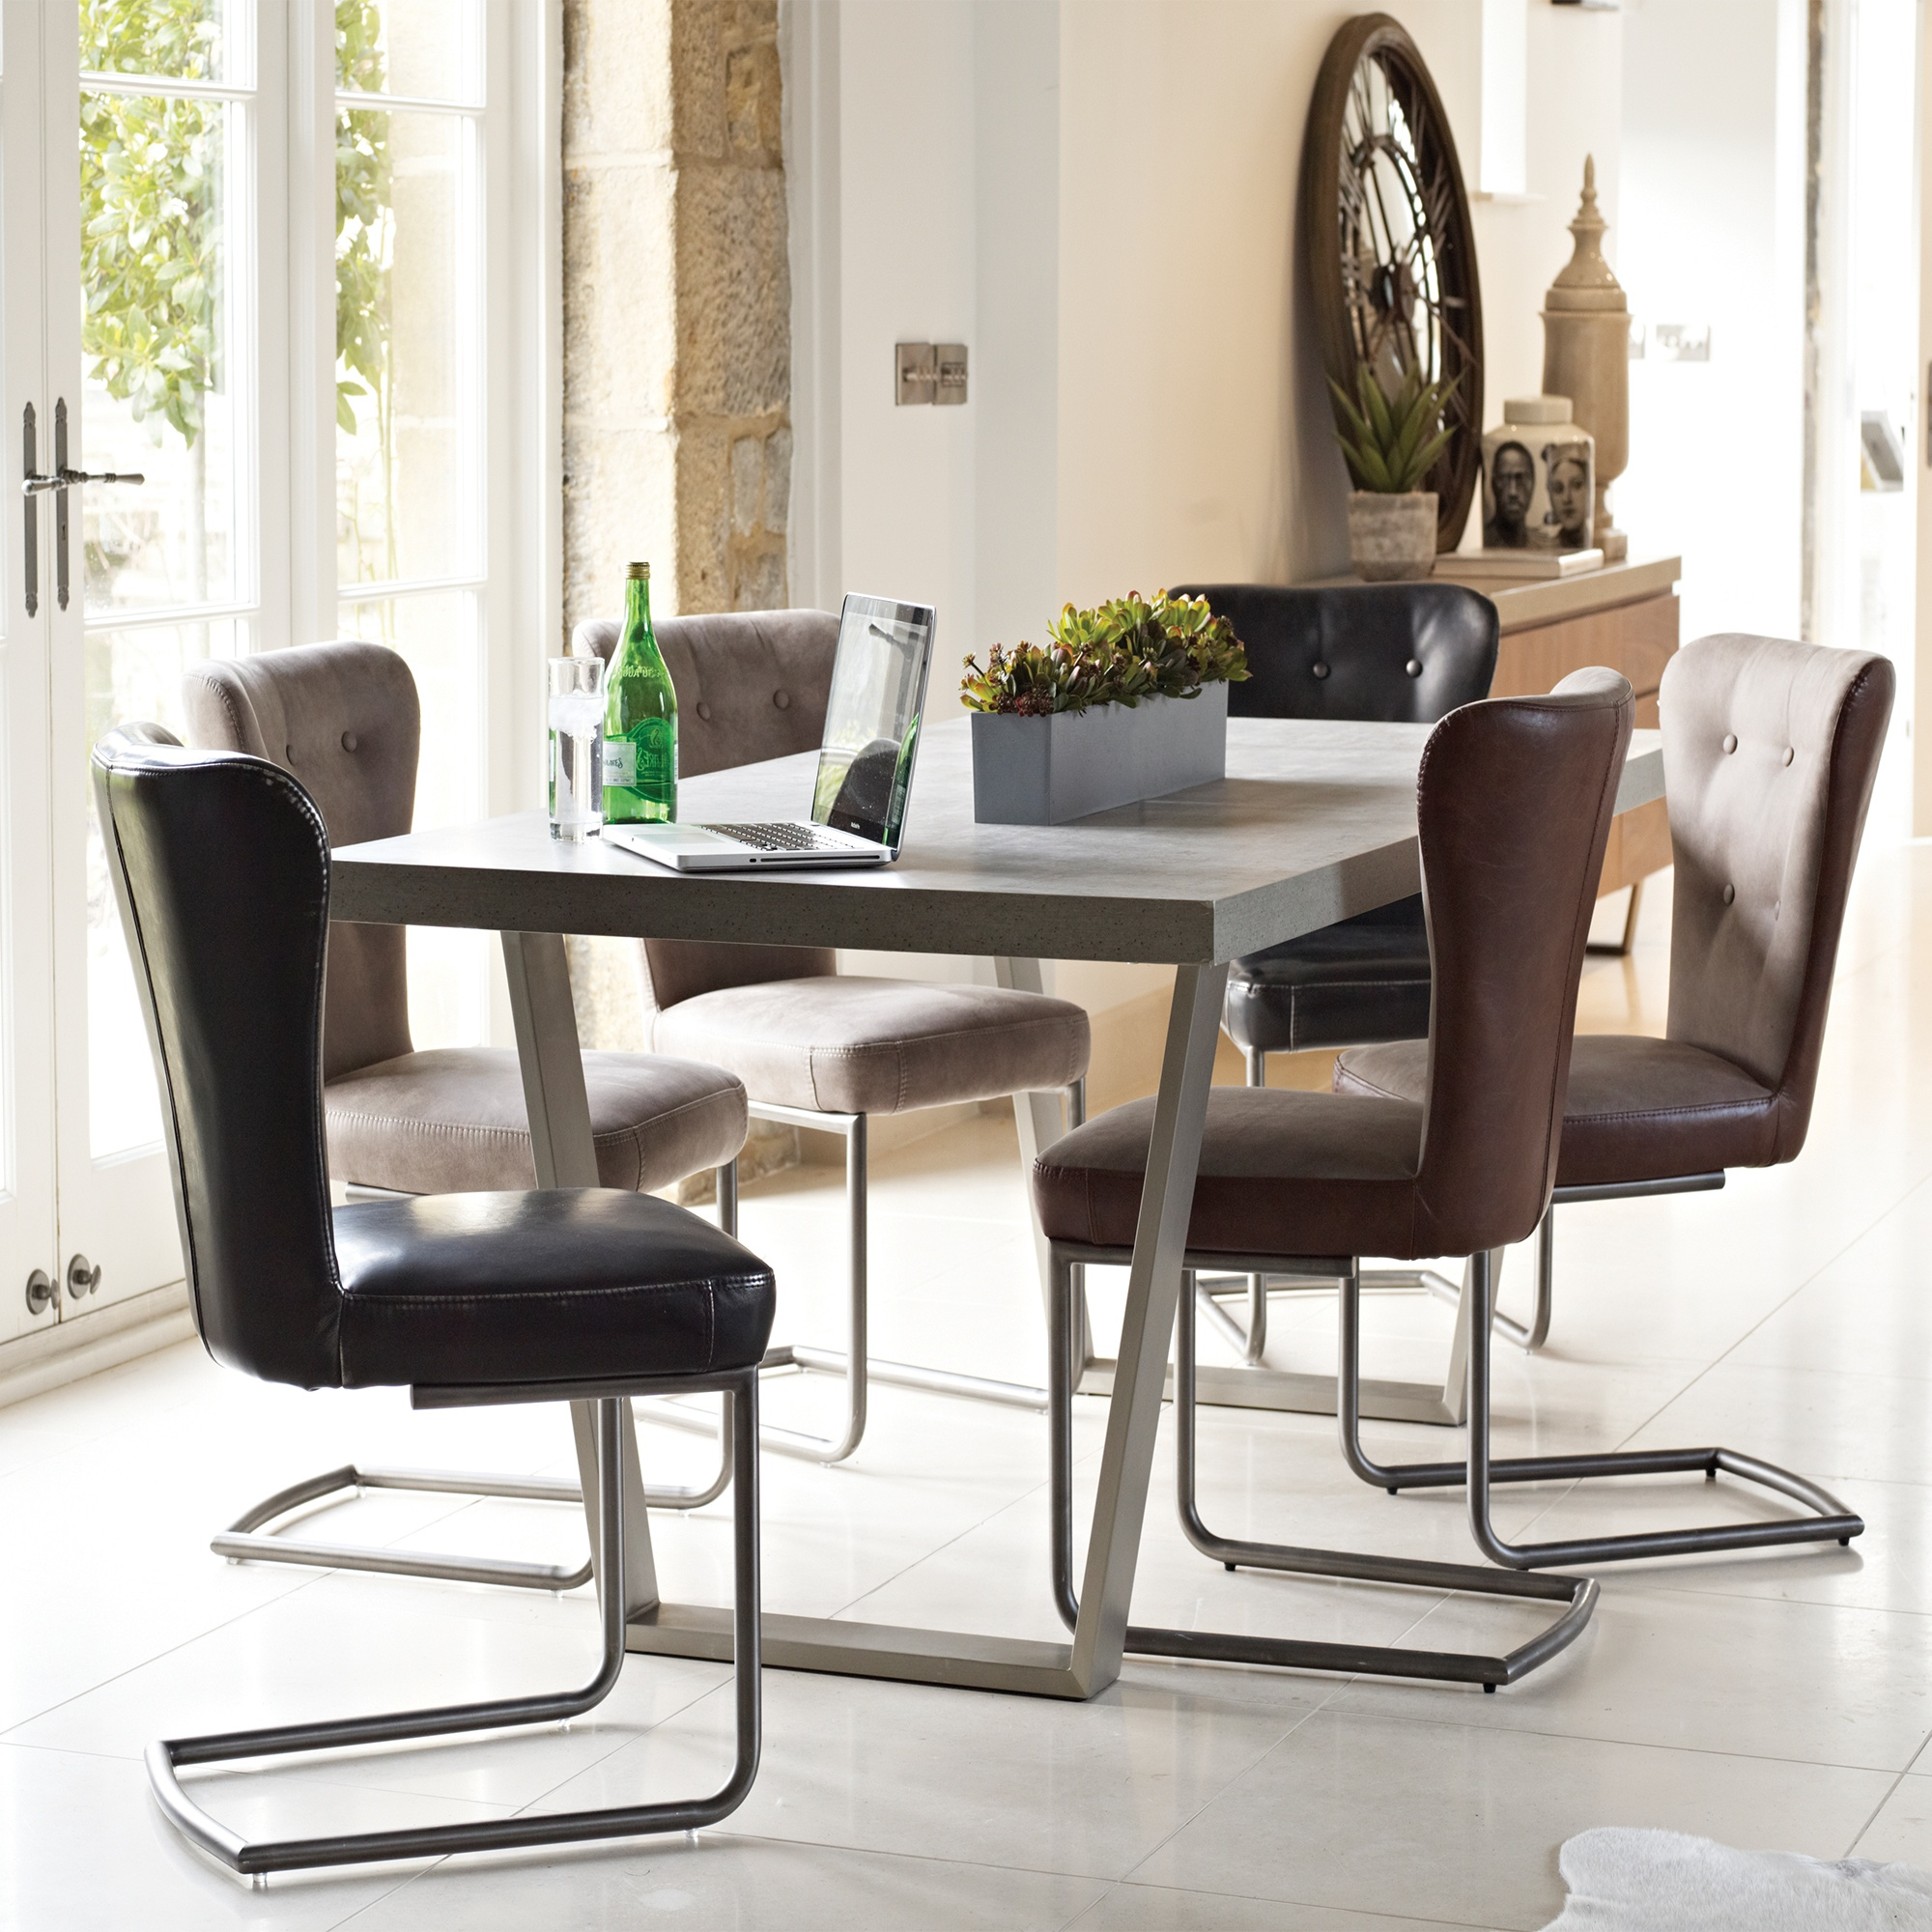 Urban large dining table and 6 chairs dining sets cookes furniture for Large dining table sets